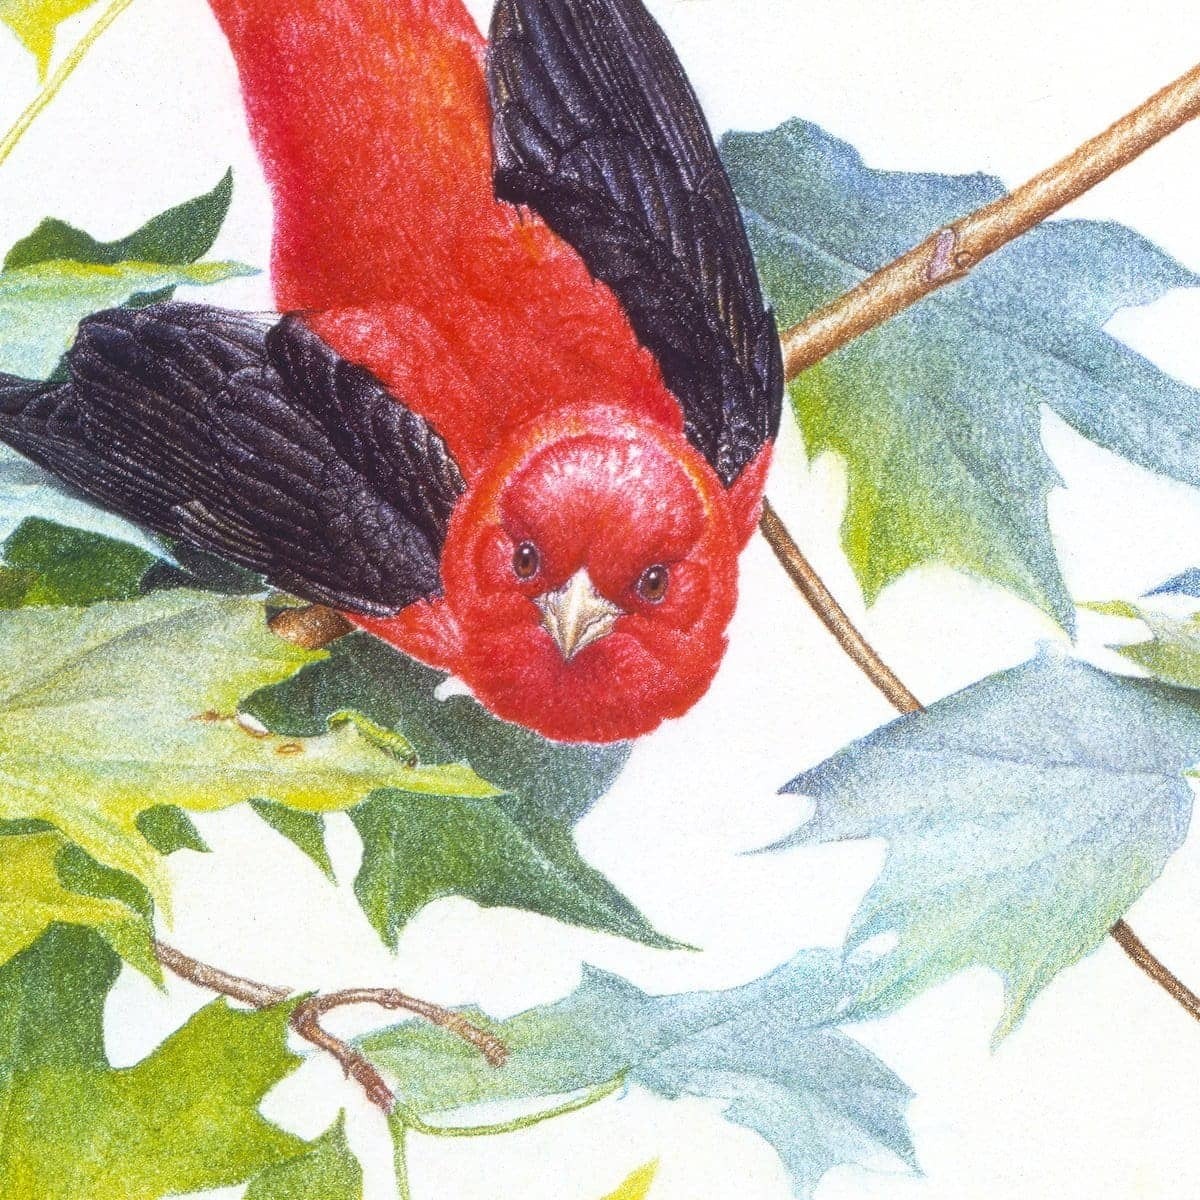 Scarlet Tanagers - Art Print by Glen Loates from the Glen Loates Store